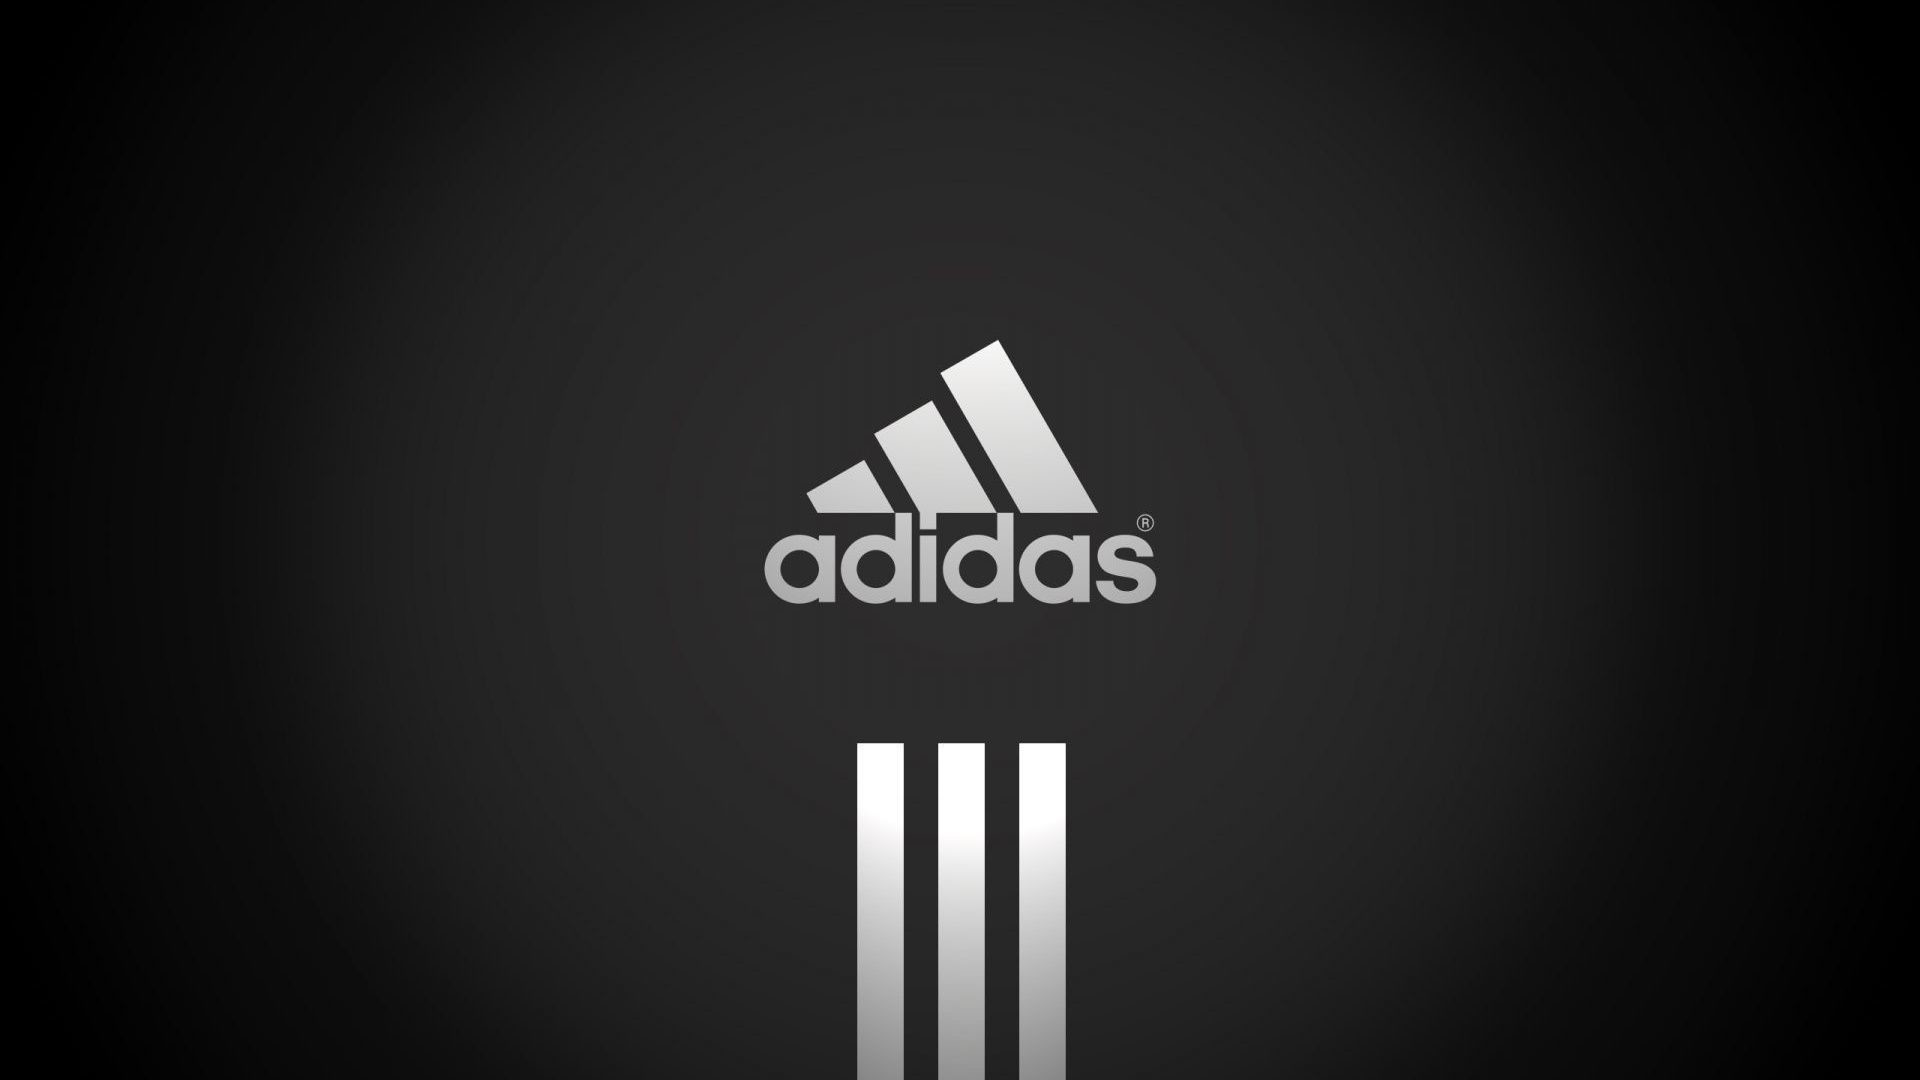 Collection Of Nike Wallpaper Hd On HDWallpapers